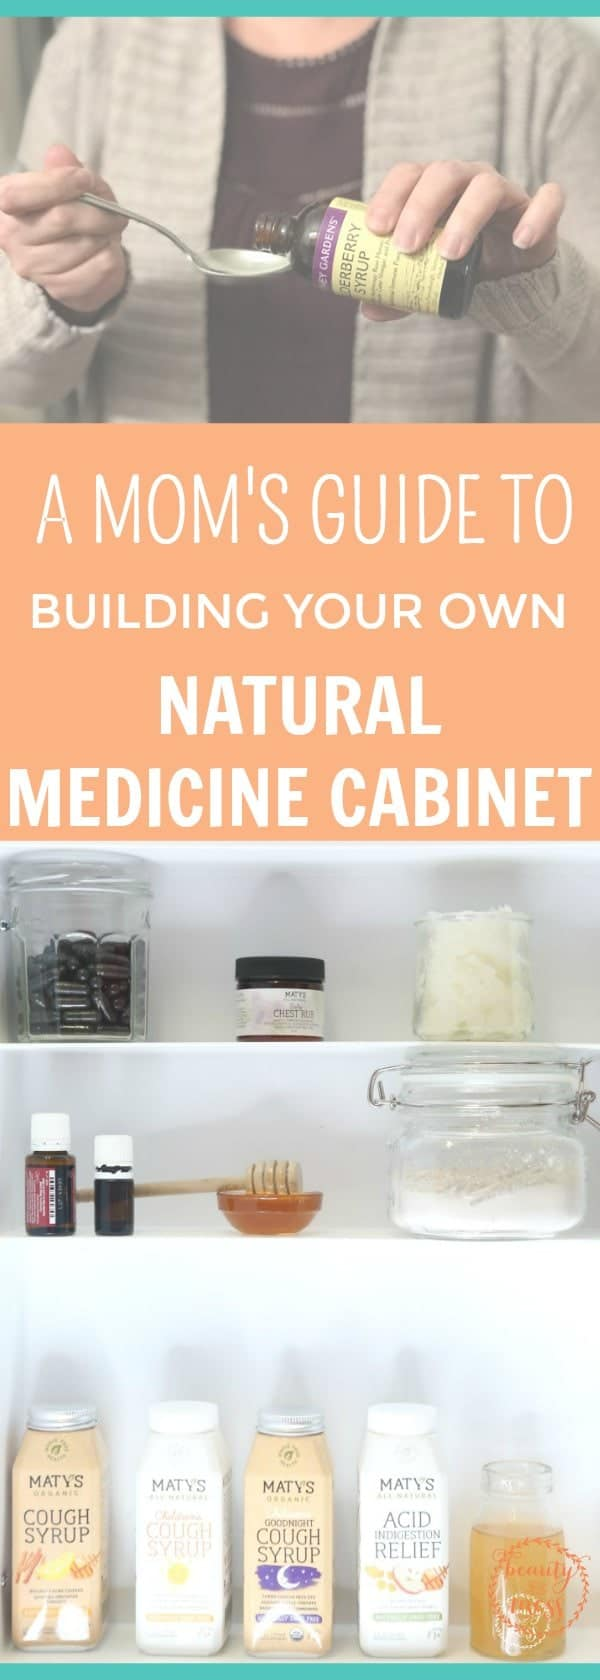 With all the information out there, building your own natural medicine cabinet can be overwhelming. Here is the ultimate guide to building your own natural medicine cabinet for your whole family. #naturalliving #healthyliving #naturalmedicinecabinet #healthyfamily